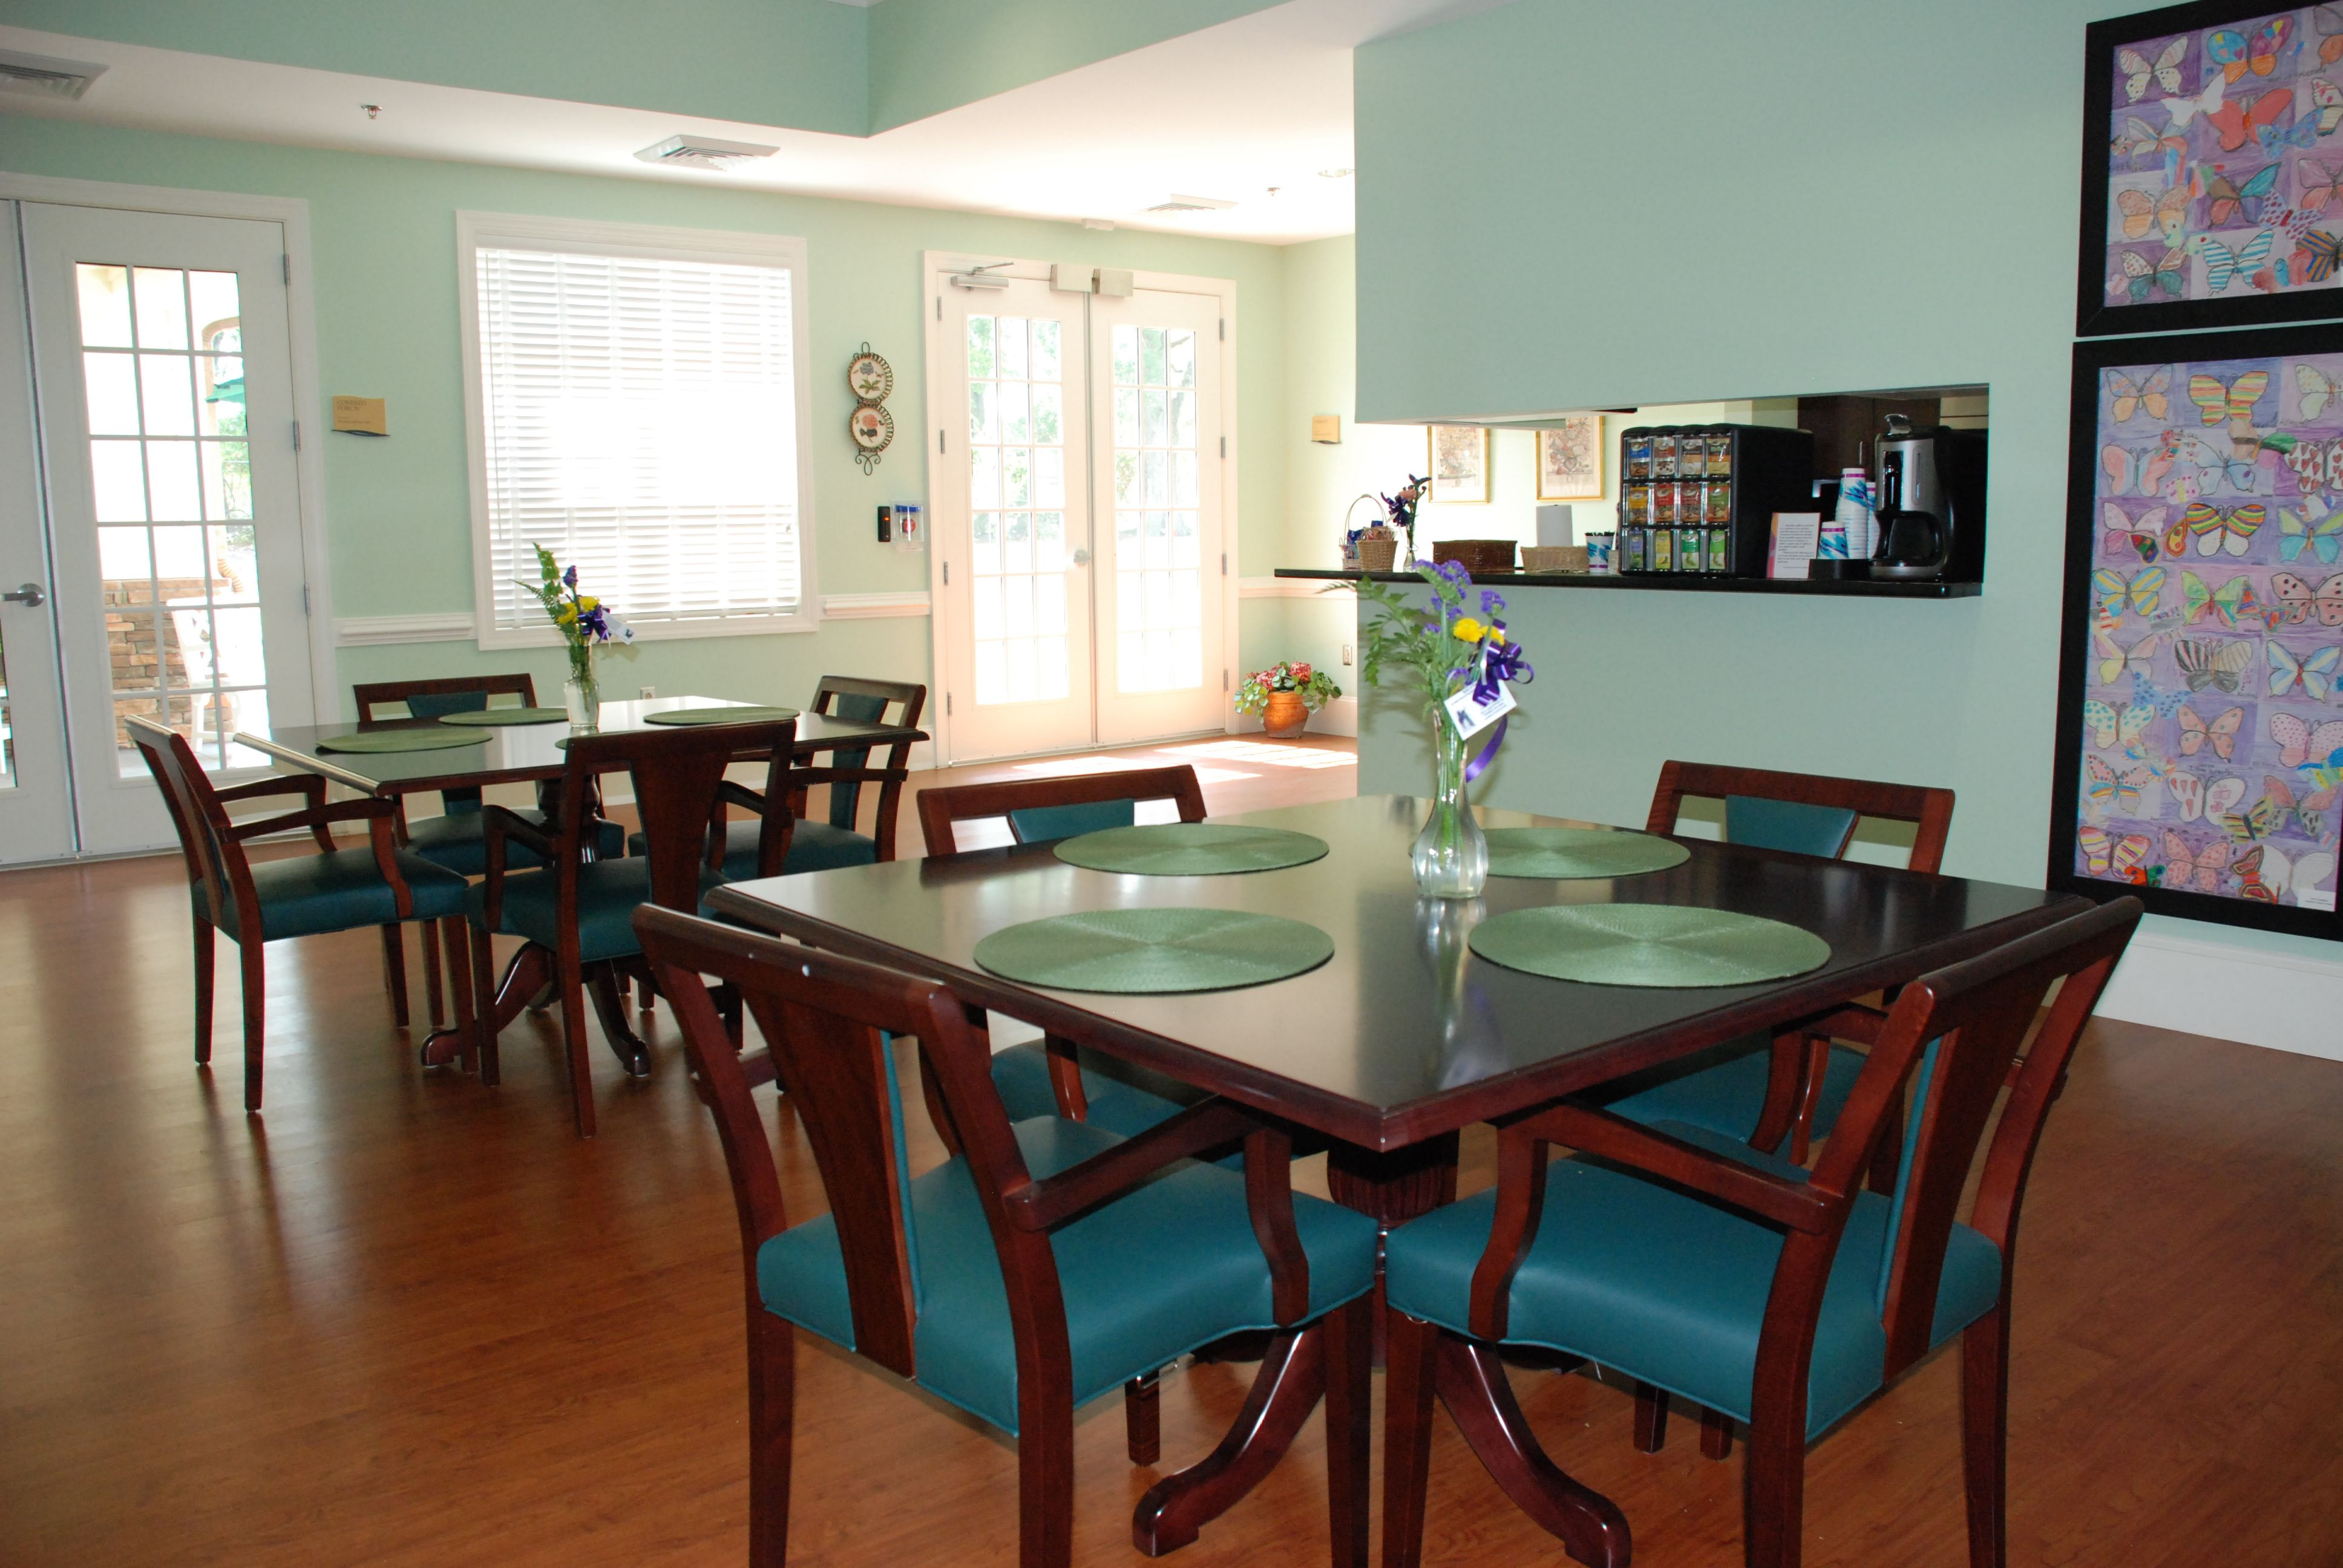 about secu hospice house located in smithfield nc